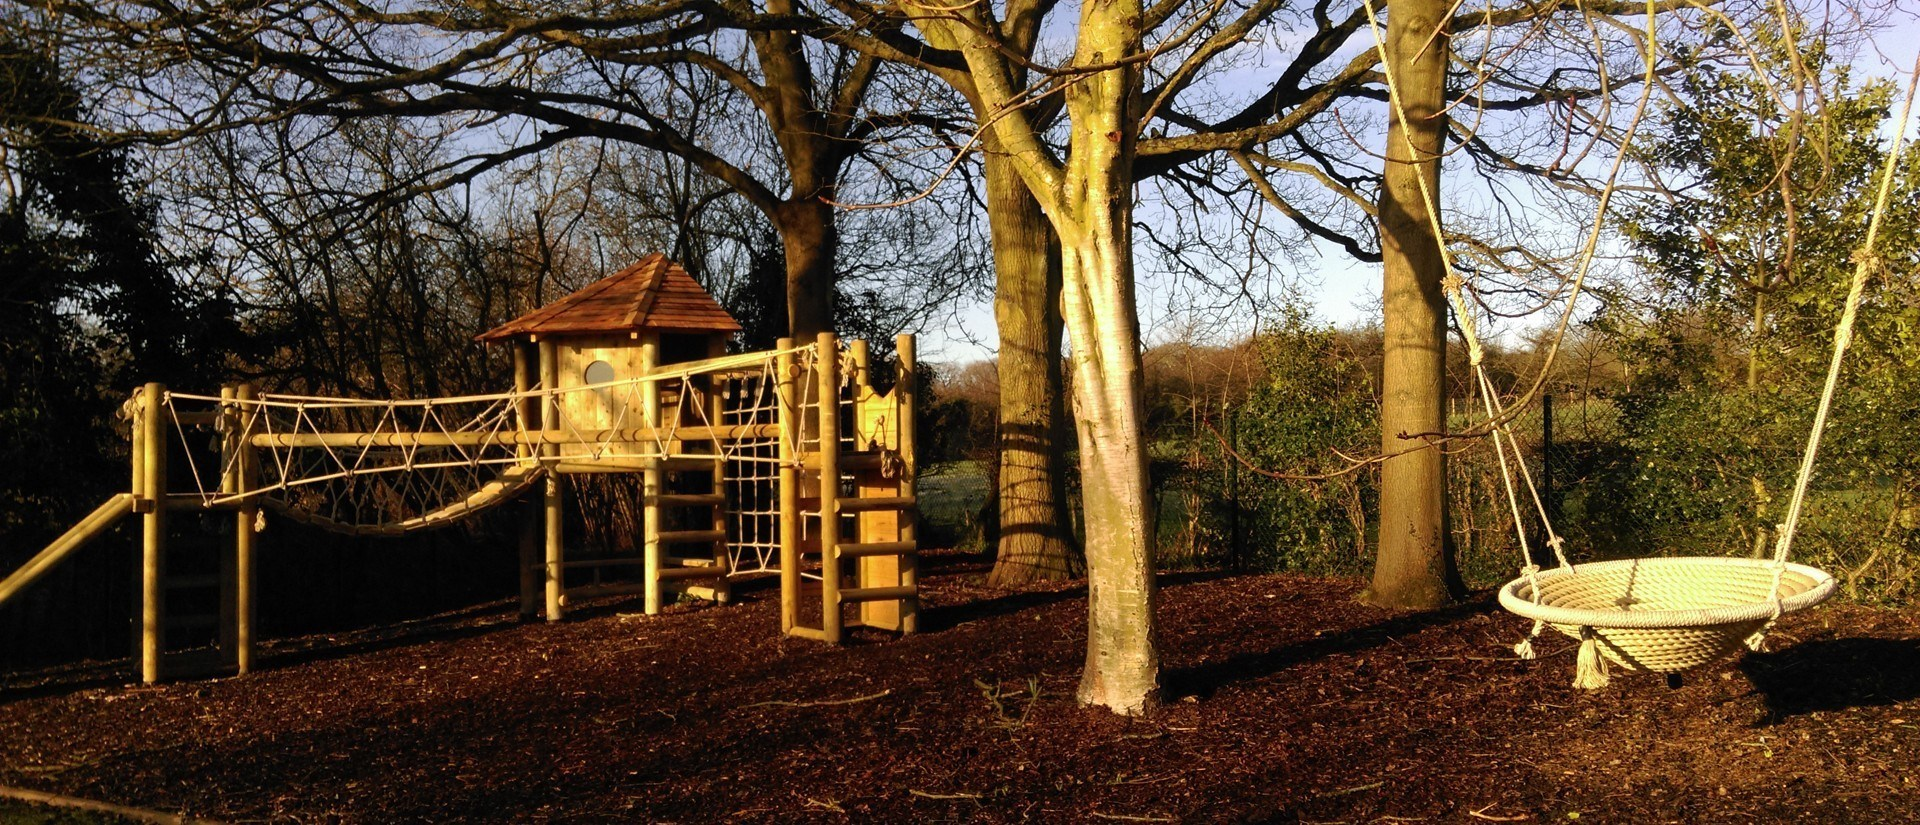 JC Climbing Frames - Tree Swing and Climbing Frame Master Builders